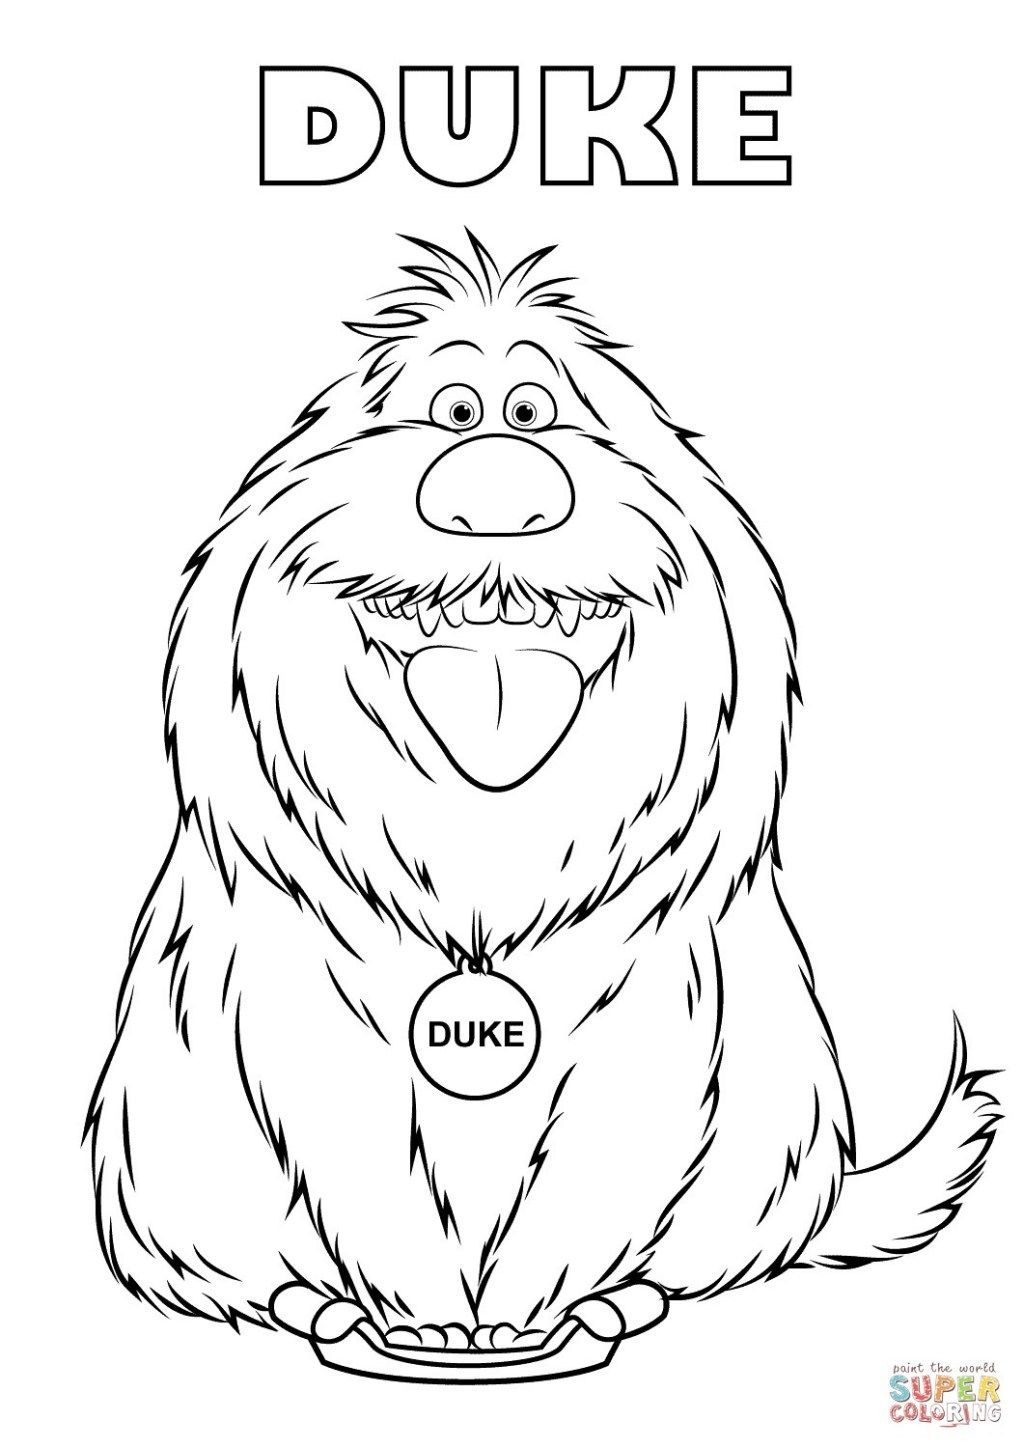 Pet Coloring Pages Pets Coloring Pages Duke From The Secret Life